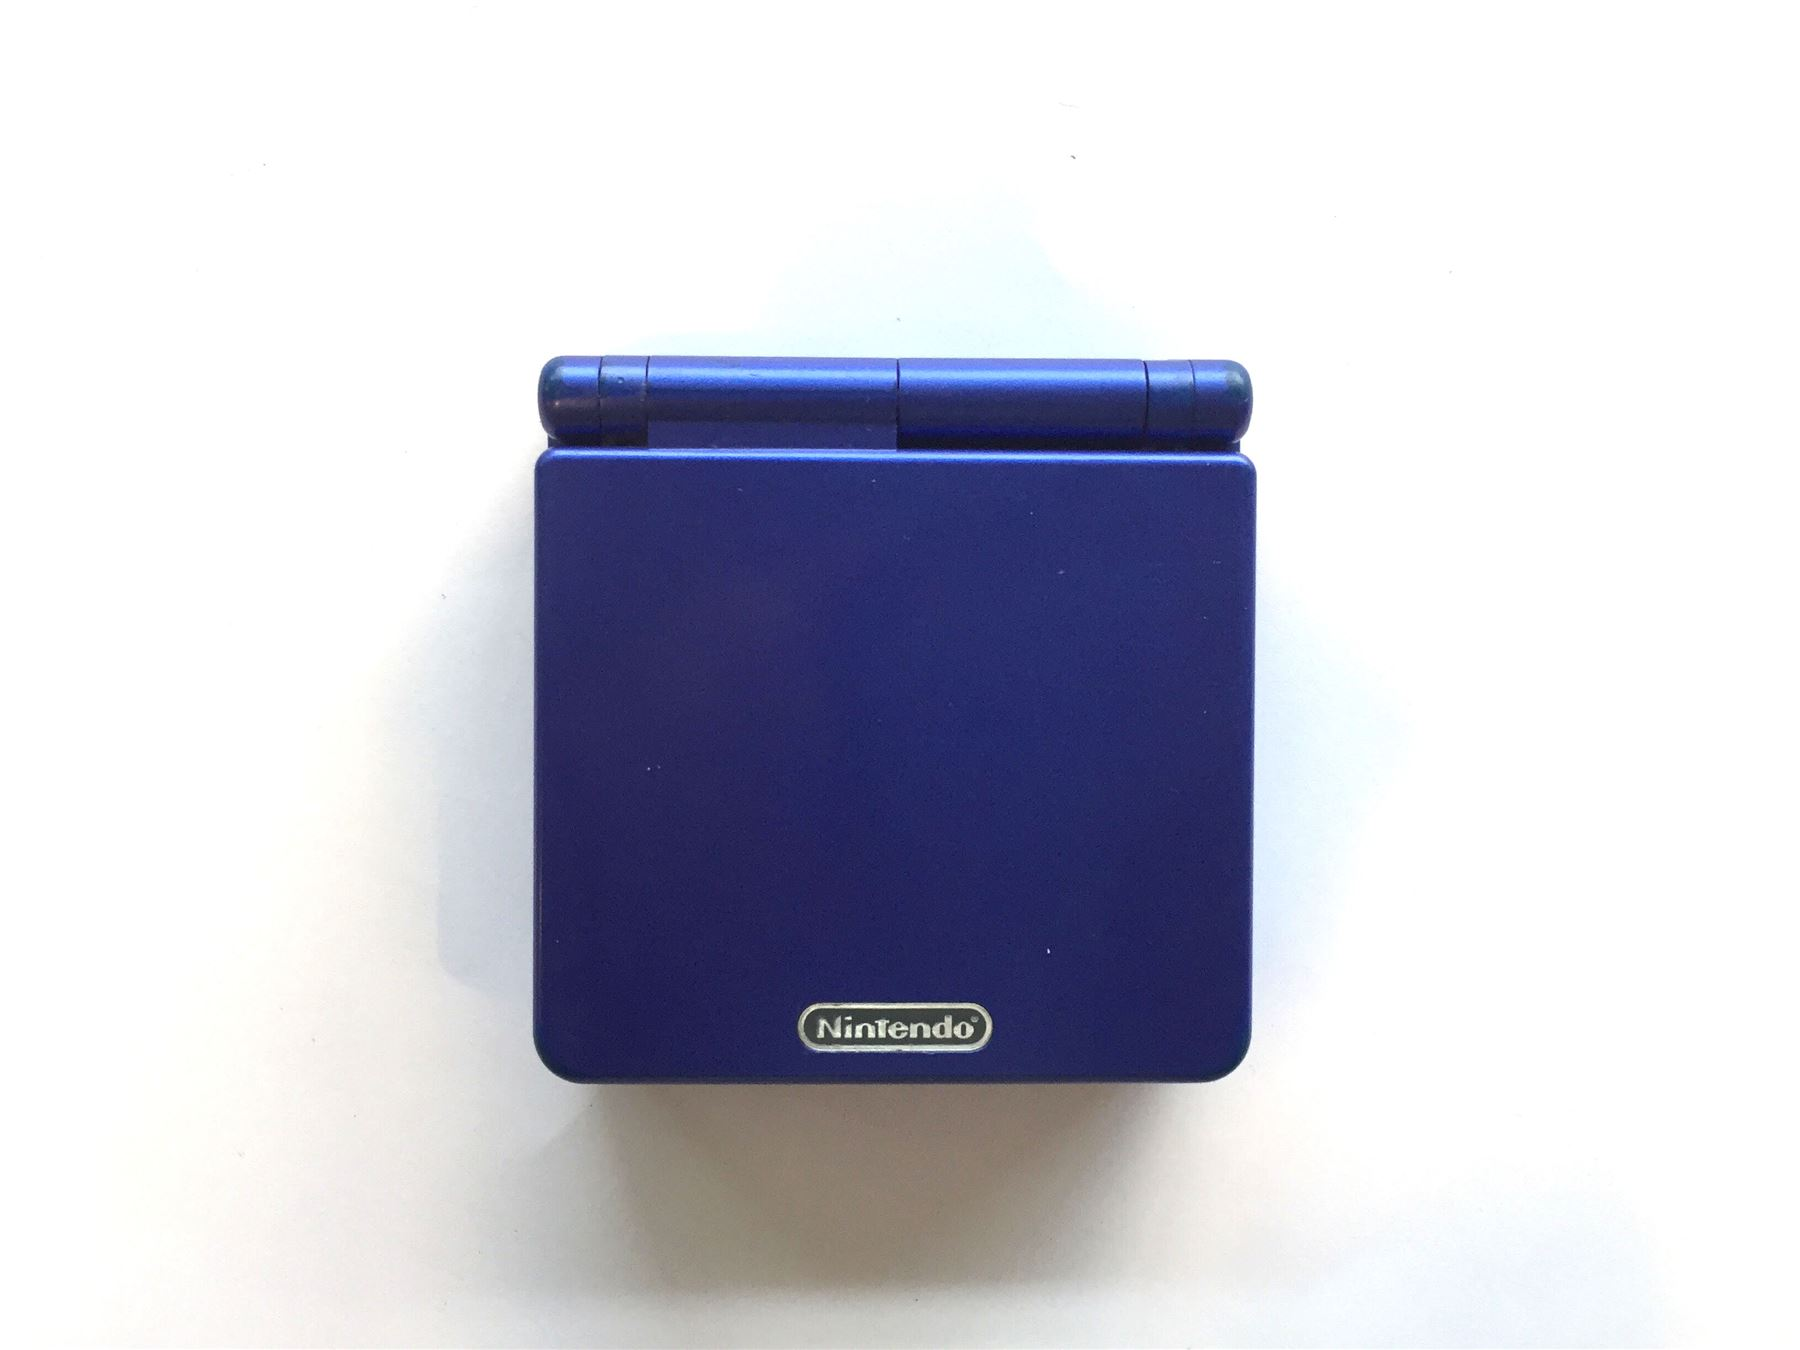 Nintendo-Gameboy-SP-Game-Boy-Advance-GBA-Console-System-6-Colour-Options thumbnail 13